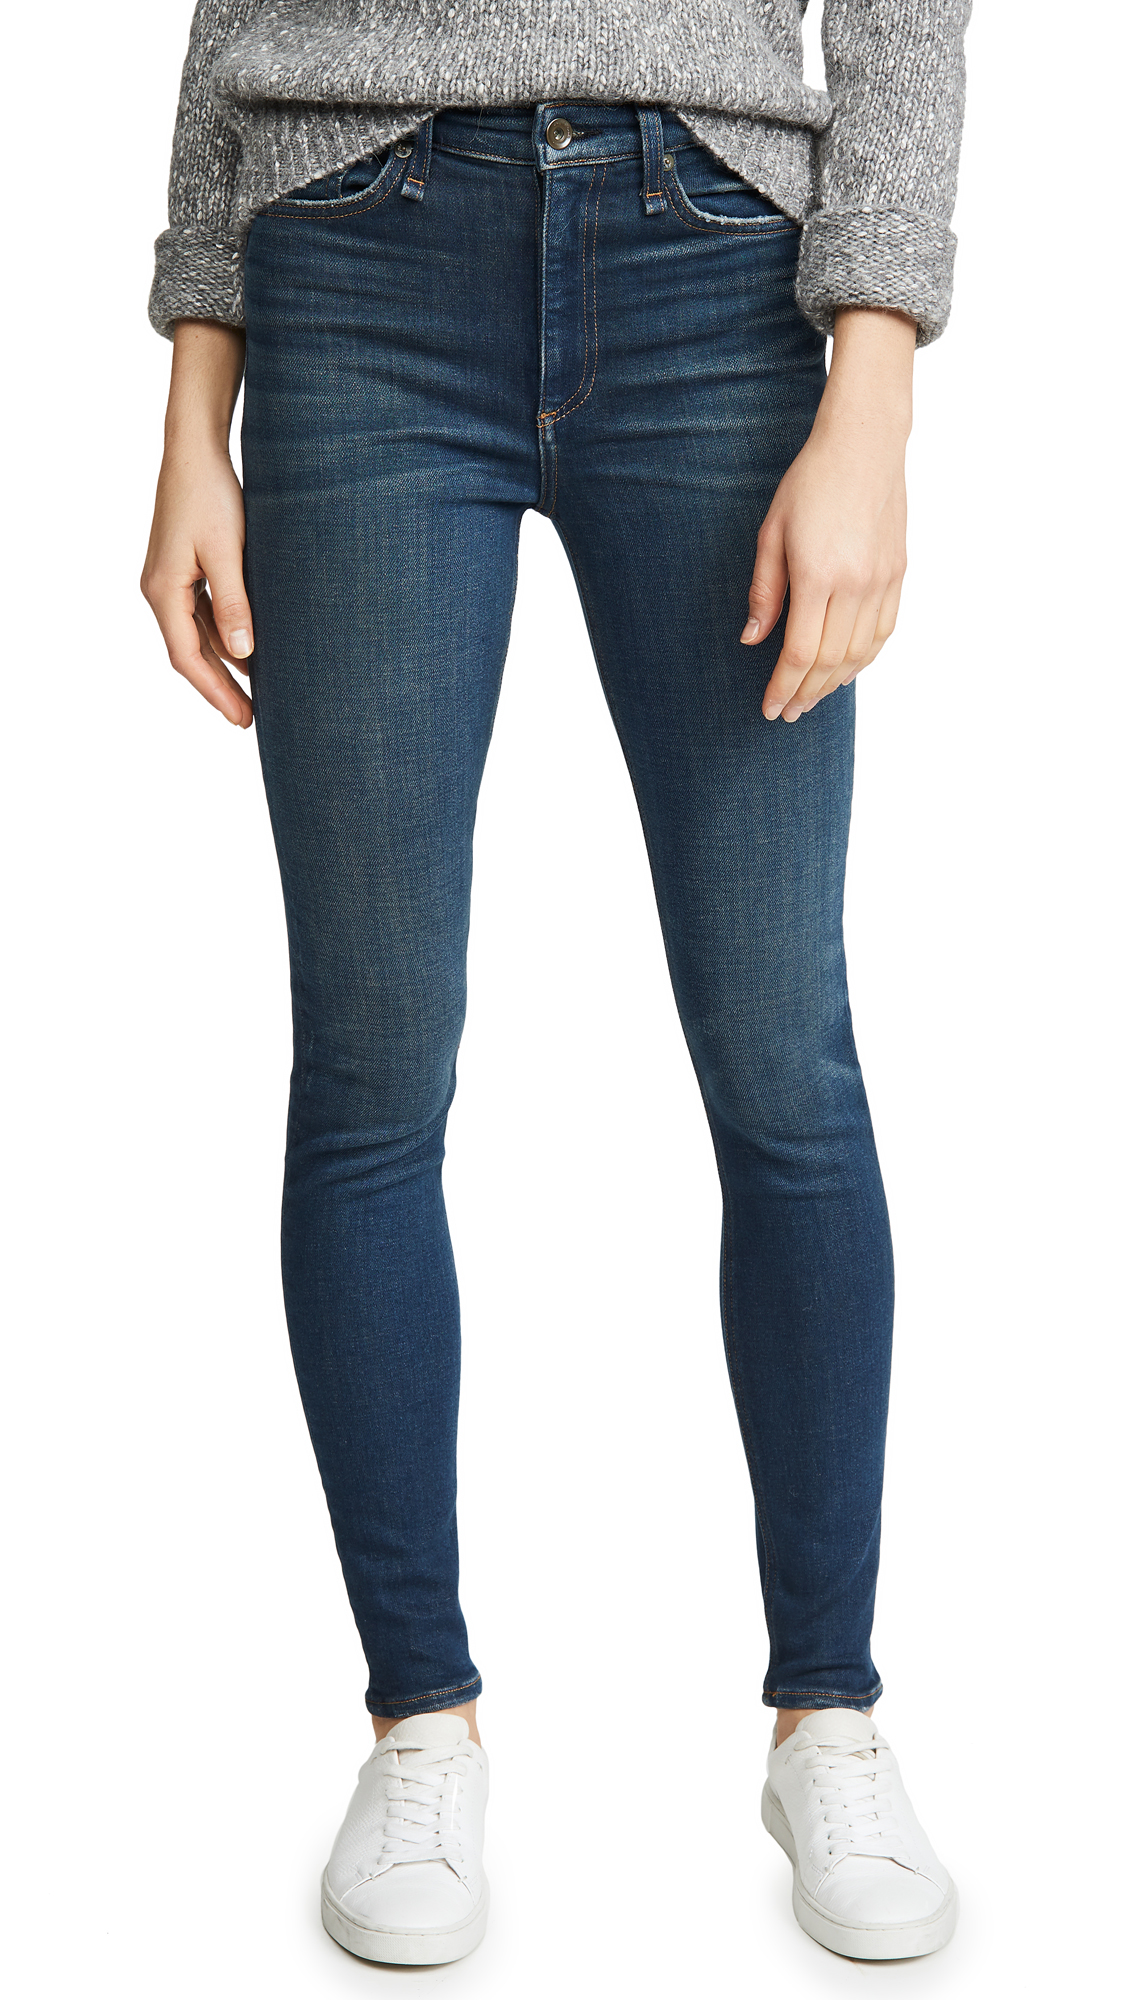 Buy Rag & Bone/JEAN online - photo of Rag & Bone/JEAN Nina High Rise Skinny Jeans